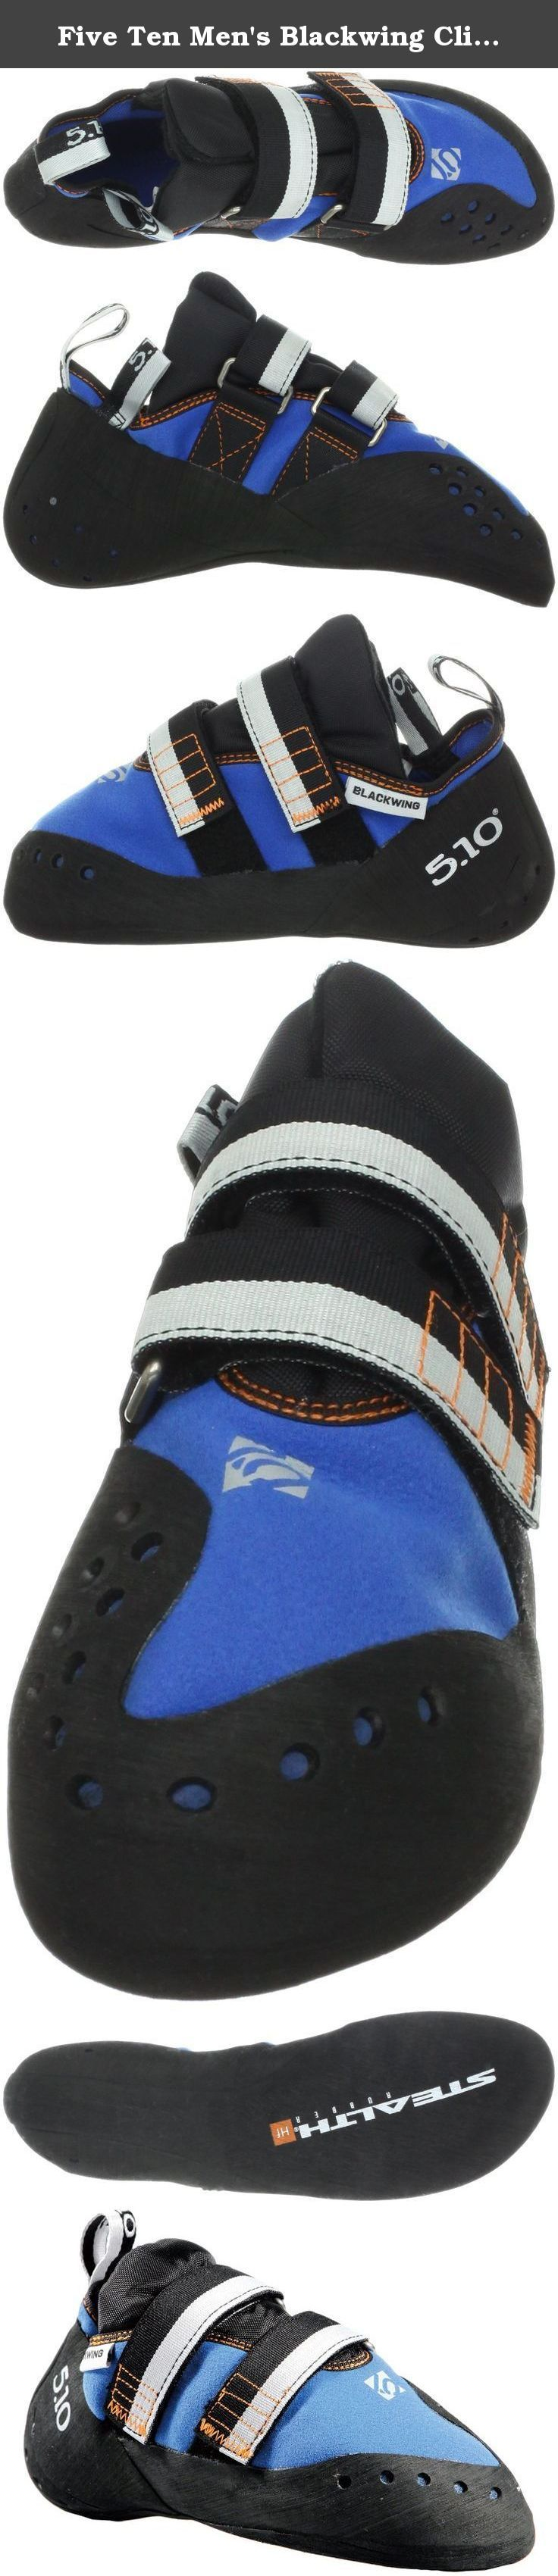 Five Ten Men's Blackwing Climbing Shoe,Blue/Orange,11.5 M US. Five Ten, the Brand of the Brave, is a leader in performance, high-friction footwear. From downhill mountain bike racing to rock climbing, from wing suit flying to kayaking, Five Ten makes footwear for the world's most dangerous sports. The Redlands, California-based company has been producing cutting-edge designs and proprietary Stealth rubber soles for nearly 30 years. With the help of top national and international athletes…